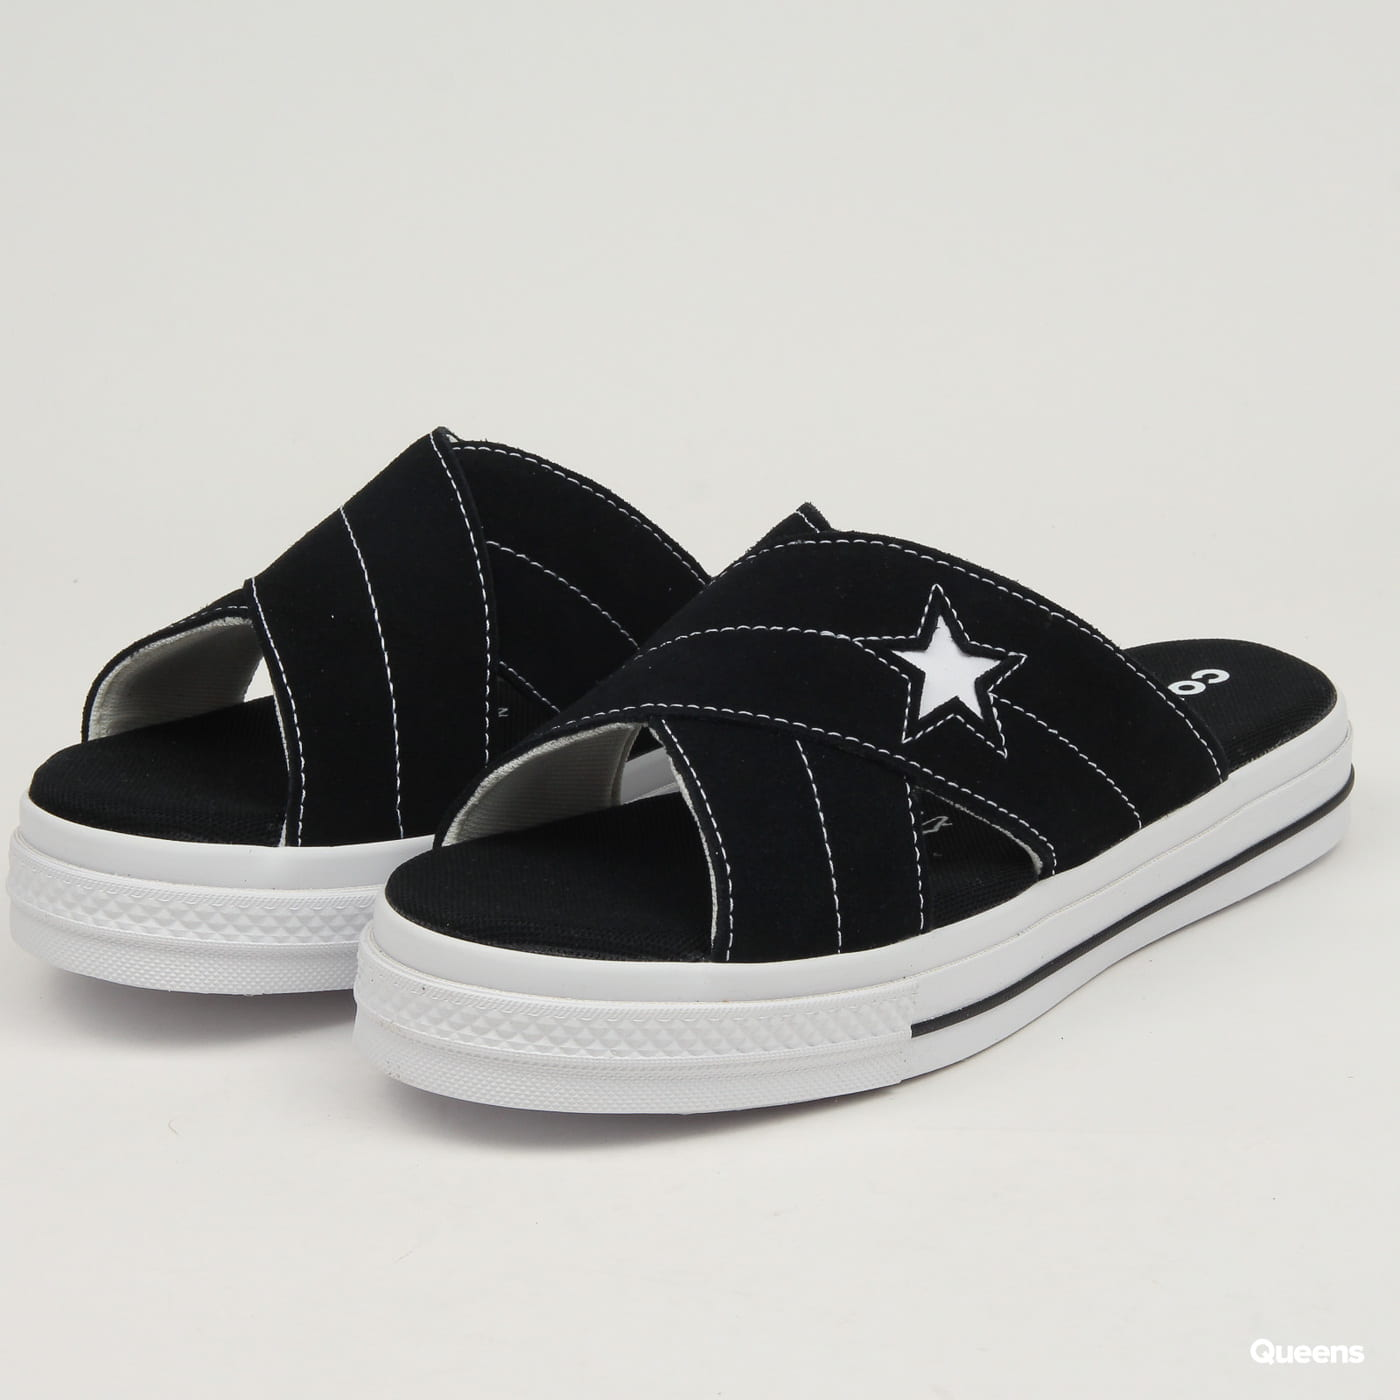 Converse One Star Sandal Slip black egret white